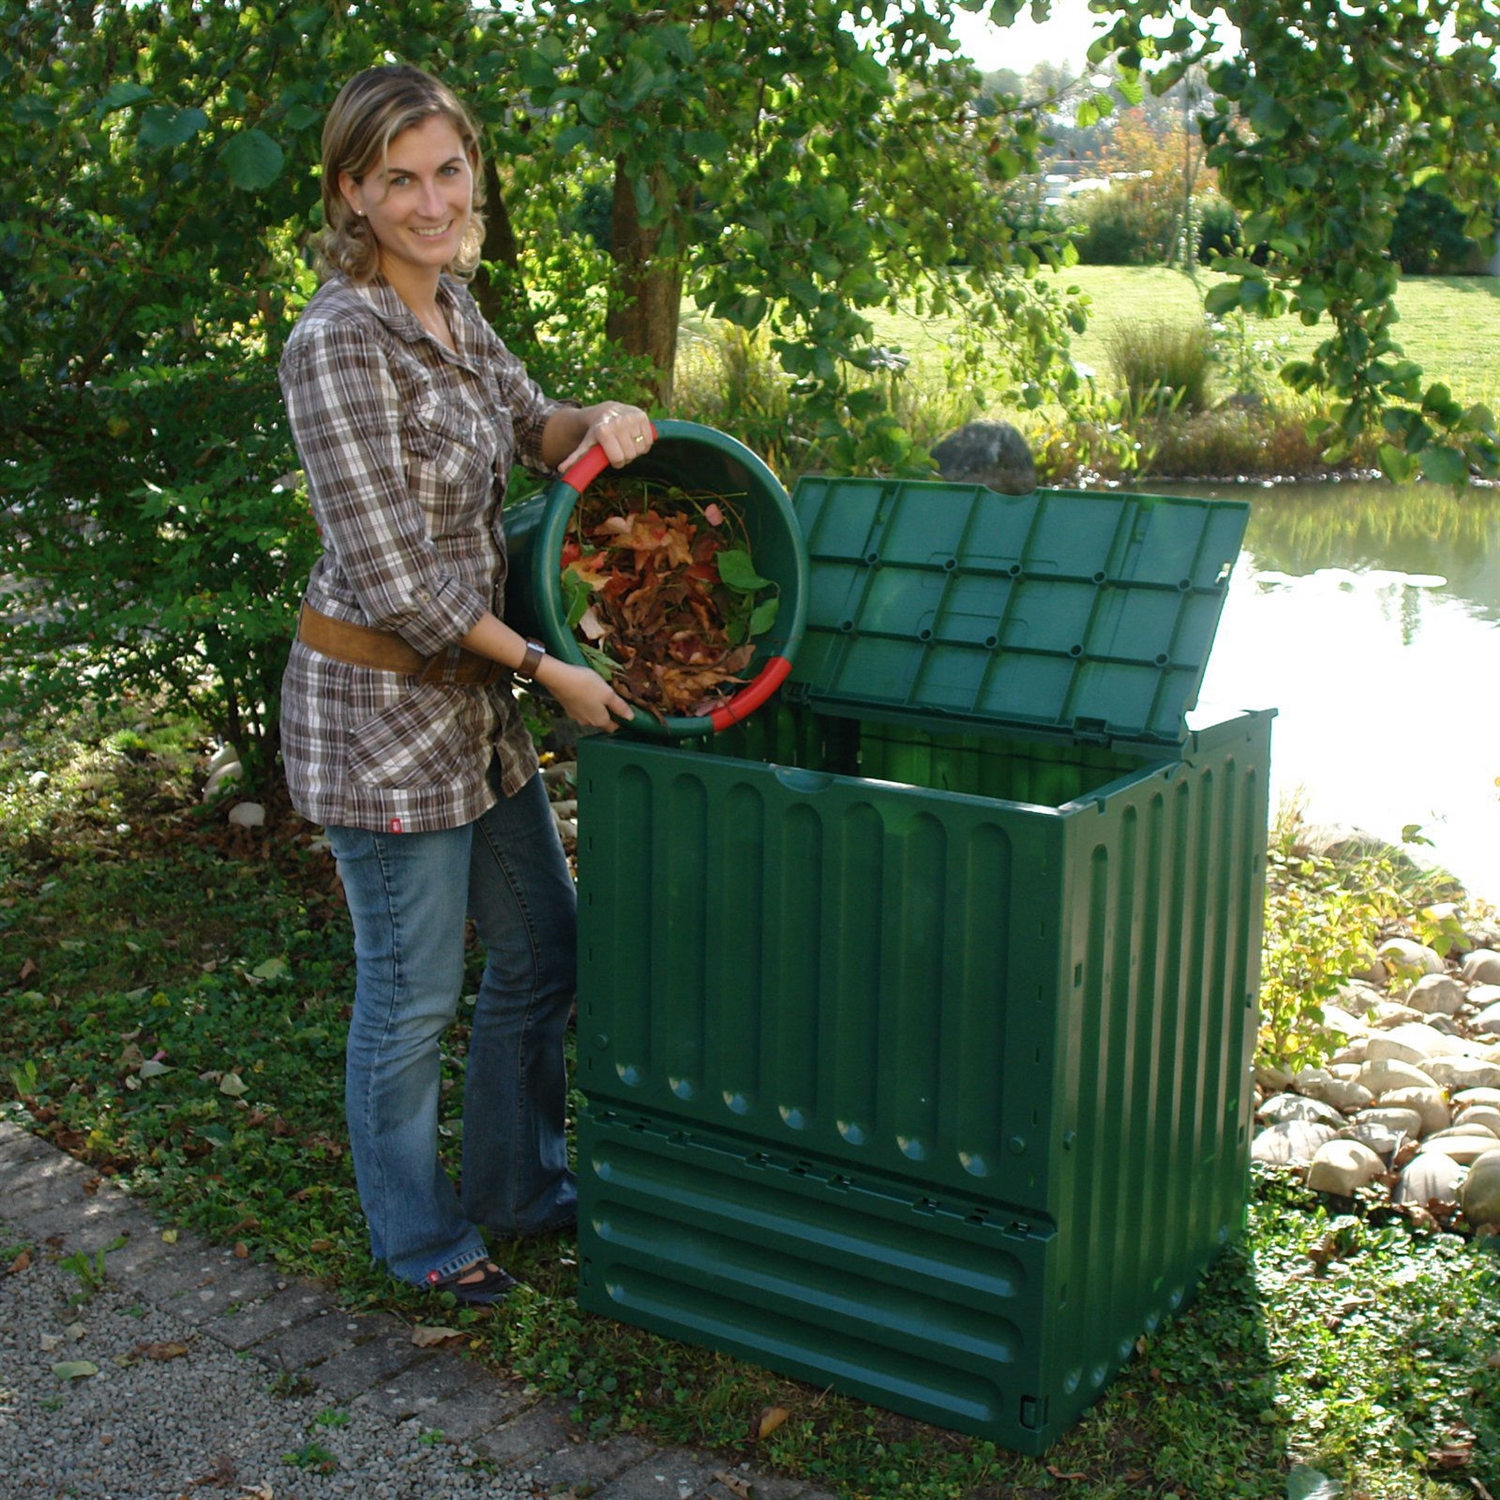 outdoor composting 110 gallon composter recycle plastic compost bin